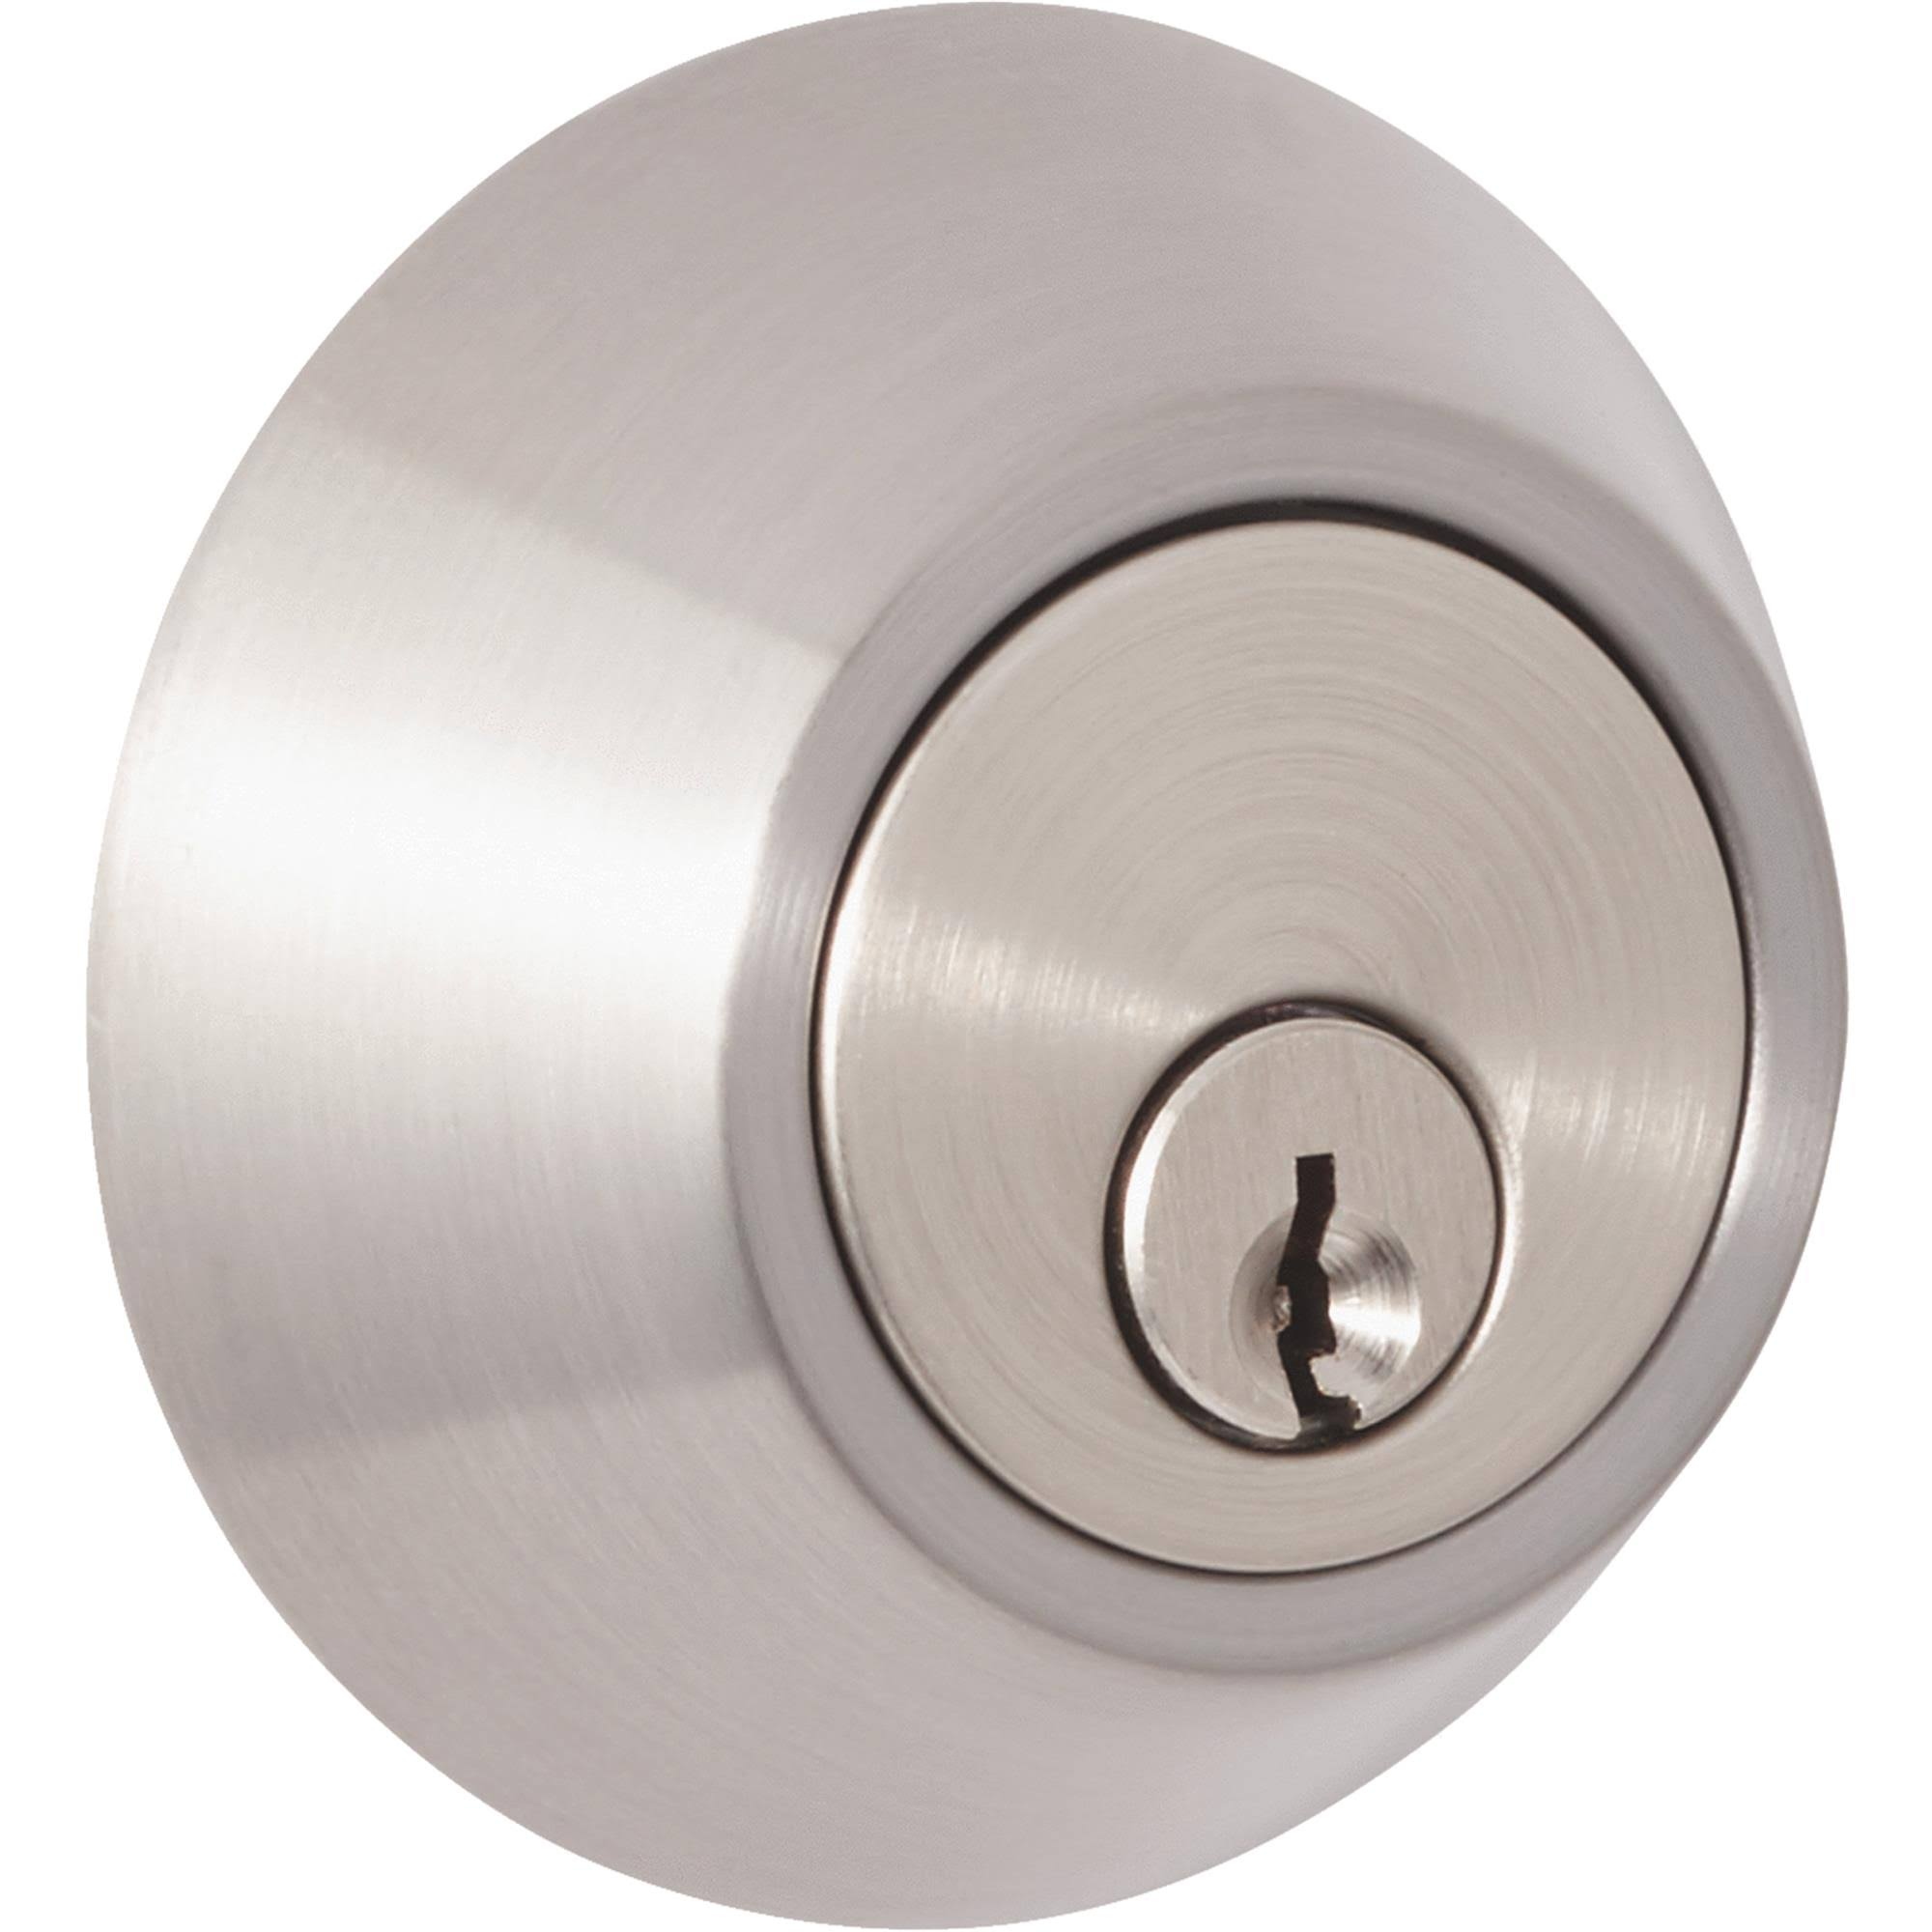 Do It Steel Pro Single Cylinder Deadbolt